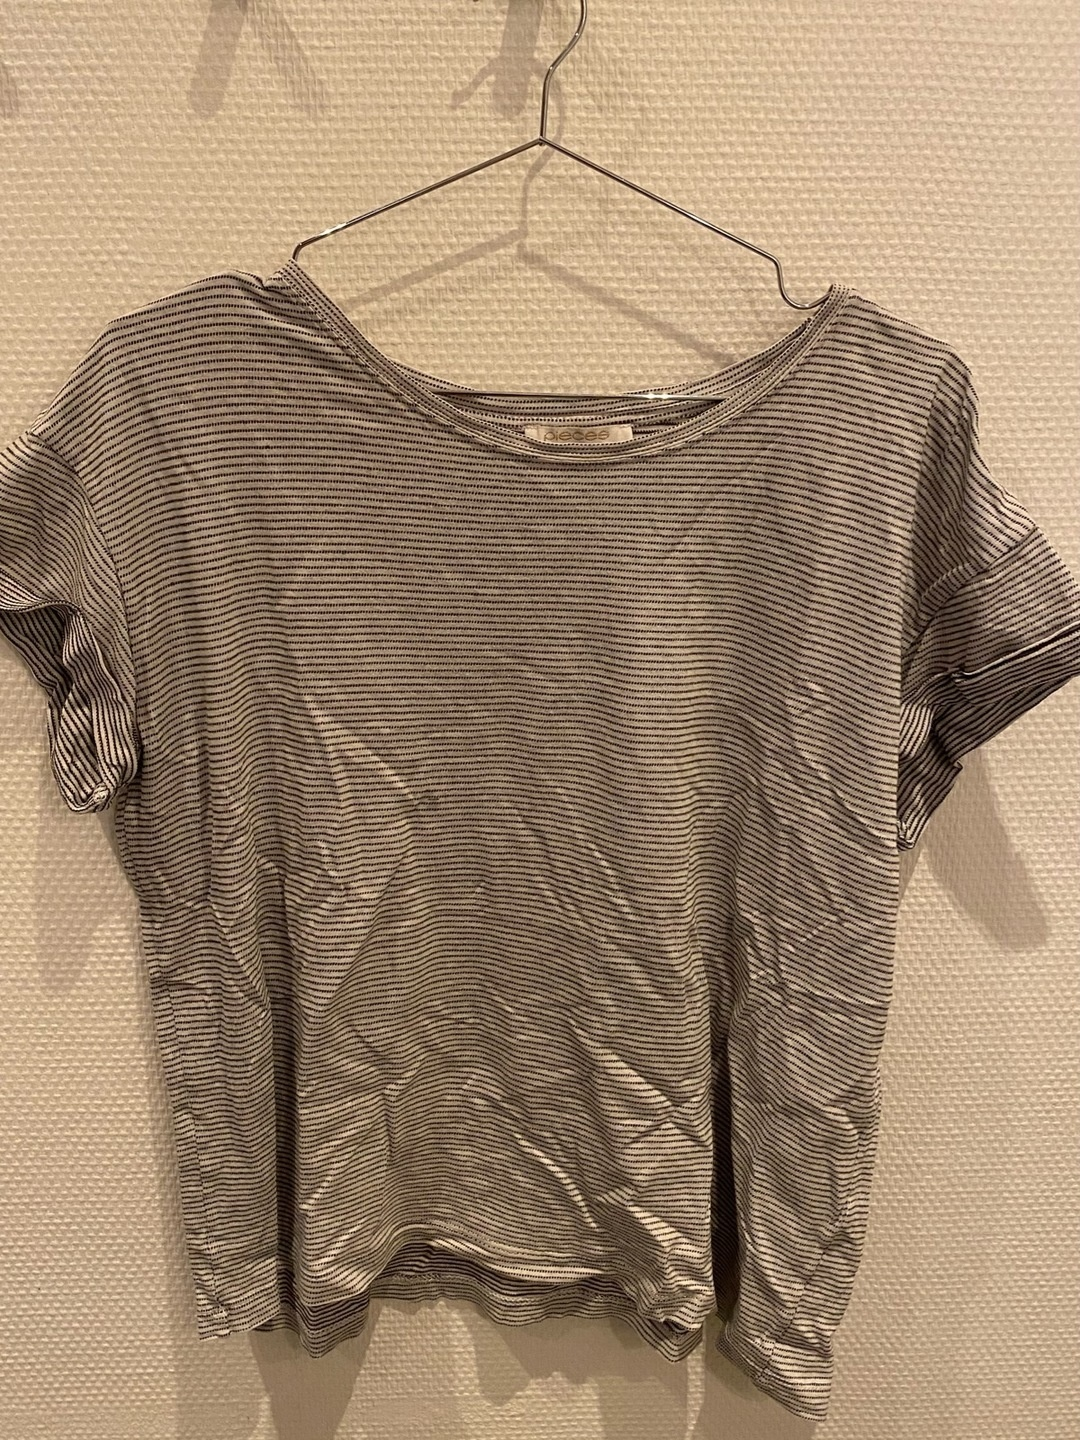 Damers toppe og t-shirts - PIECES photo 2